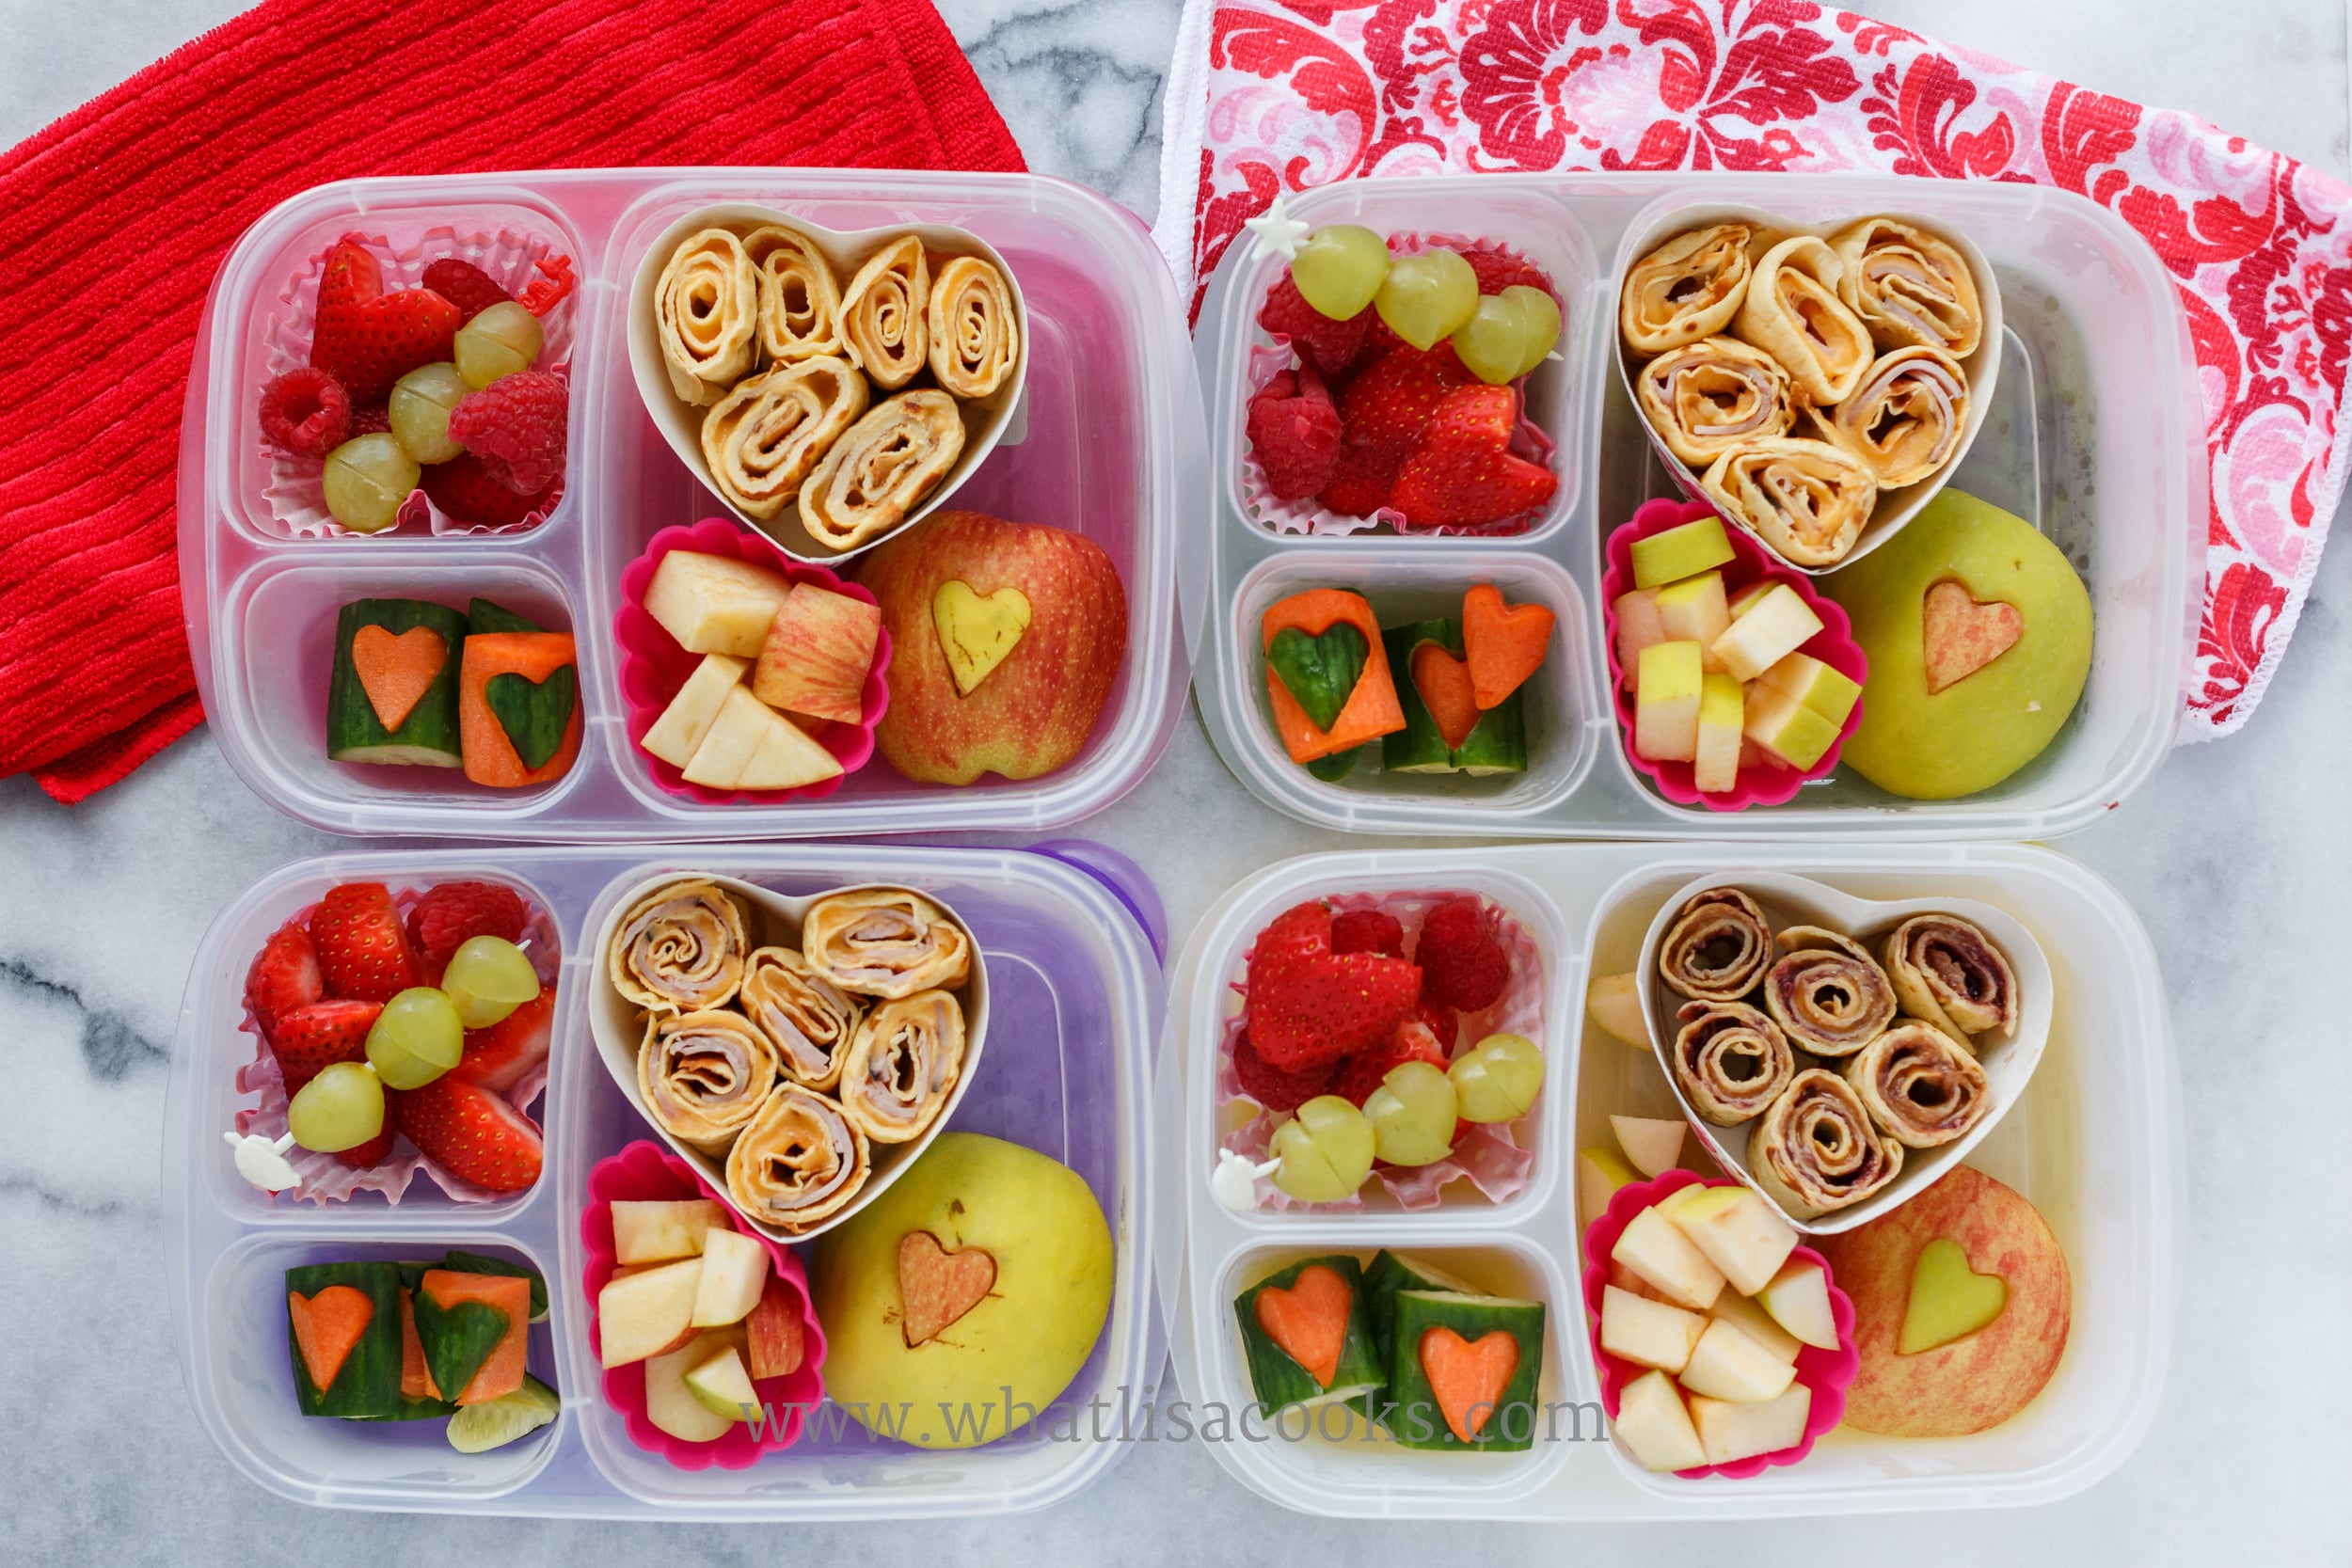 Crepe rolls with cheese and ham, apples with heart cutouts, carrots and cucumbers with heart cutouts, grapes and strawberries.